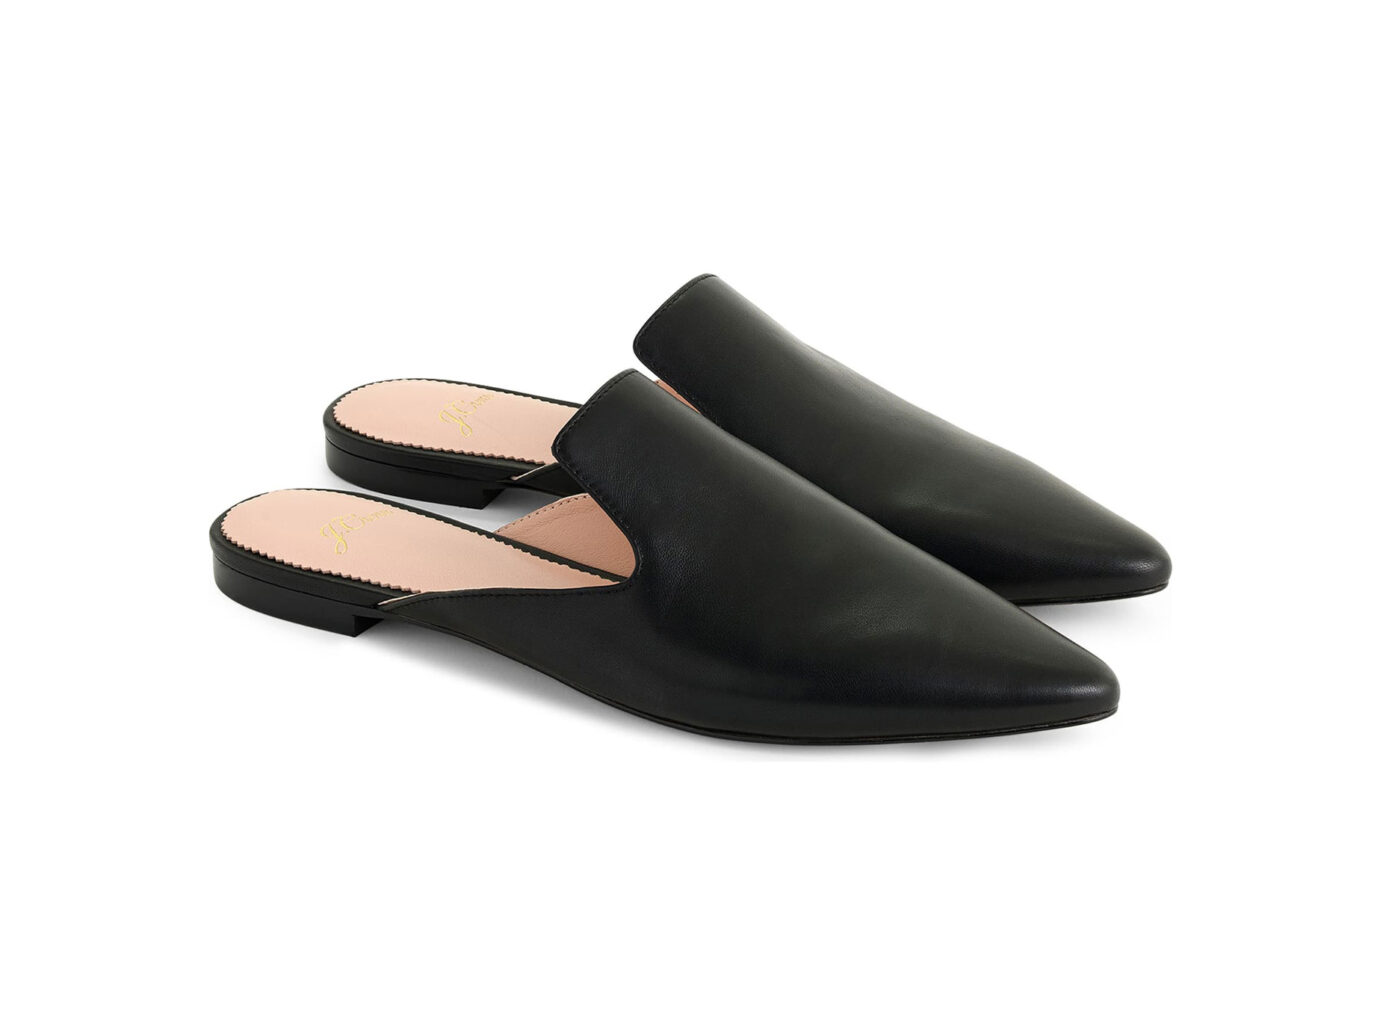 J.Crew Pointed Toe Mule